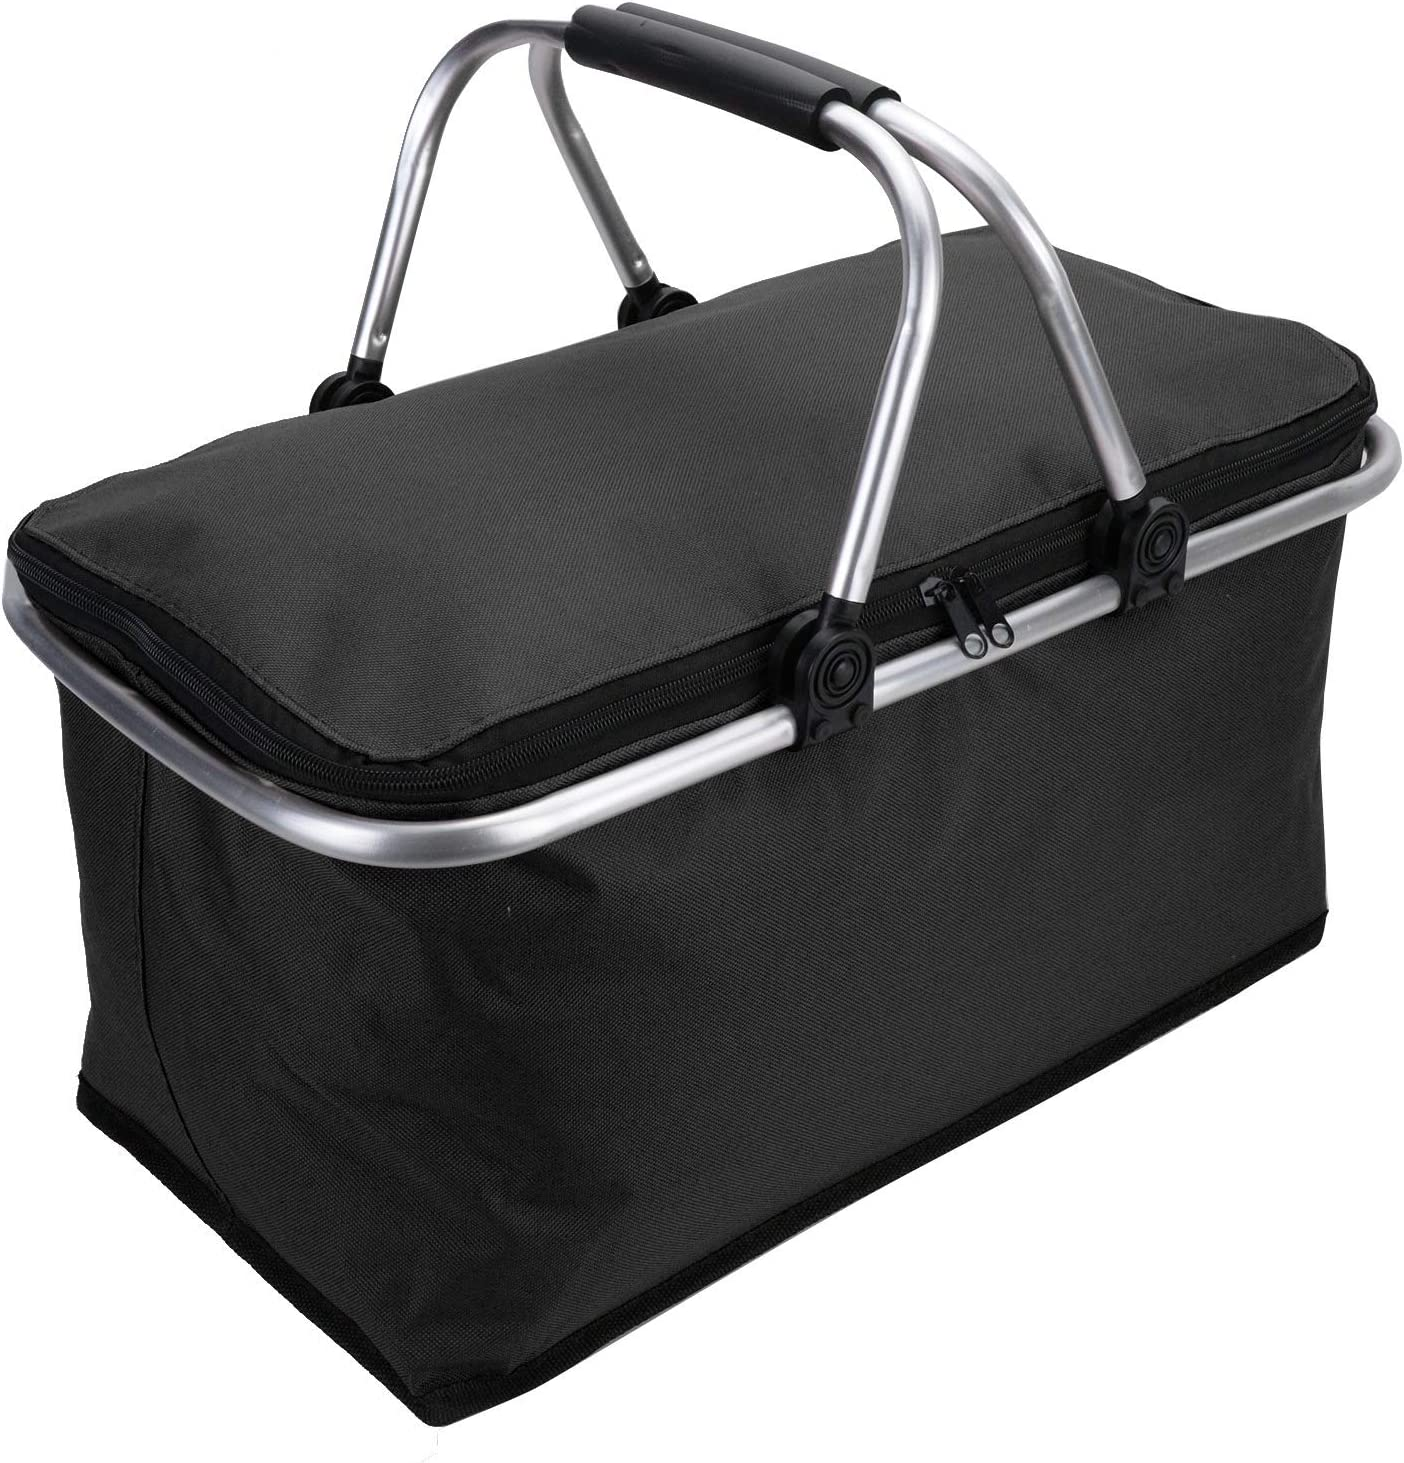 YORKING Cooler Bag Extra Large 30L Insulated Cooler Cool Bag Box for Pinic Camping Hiking Beach Day Trip